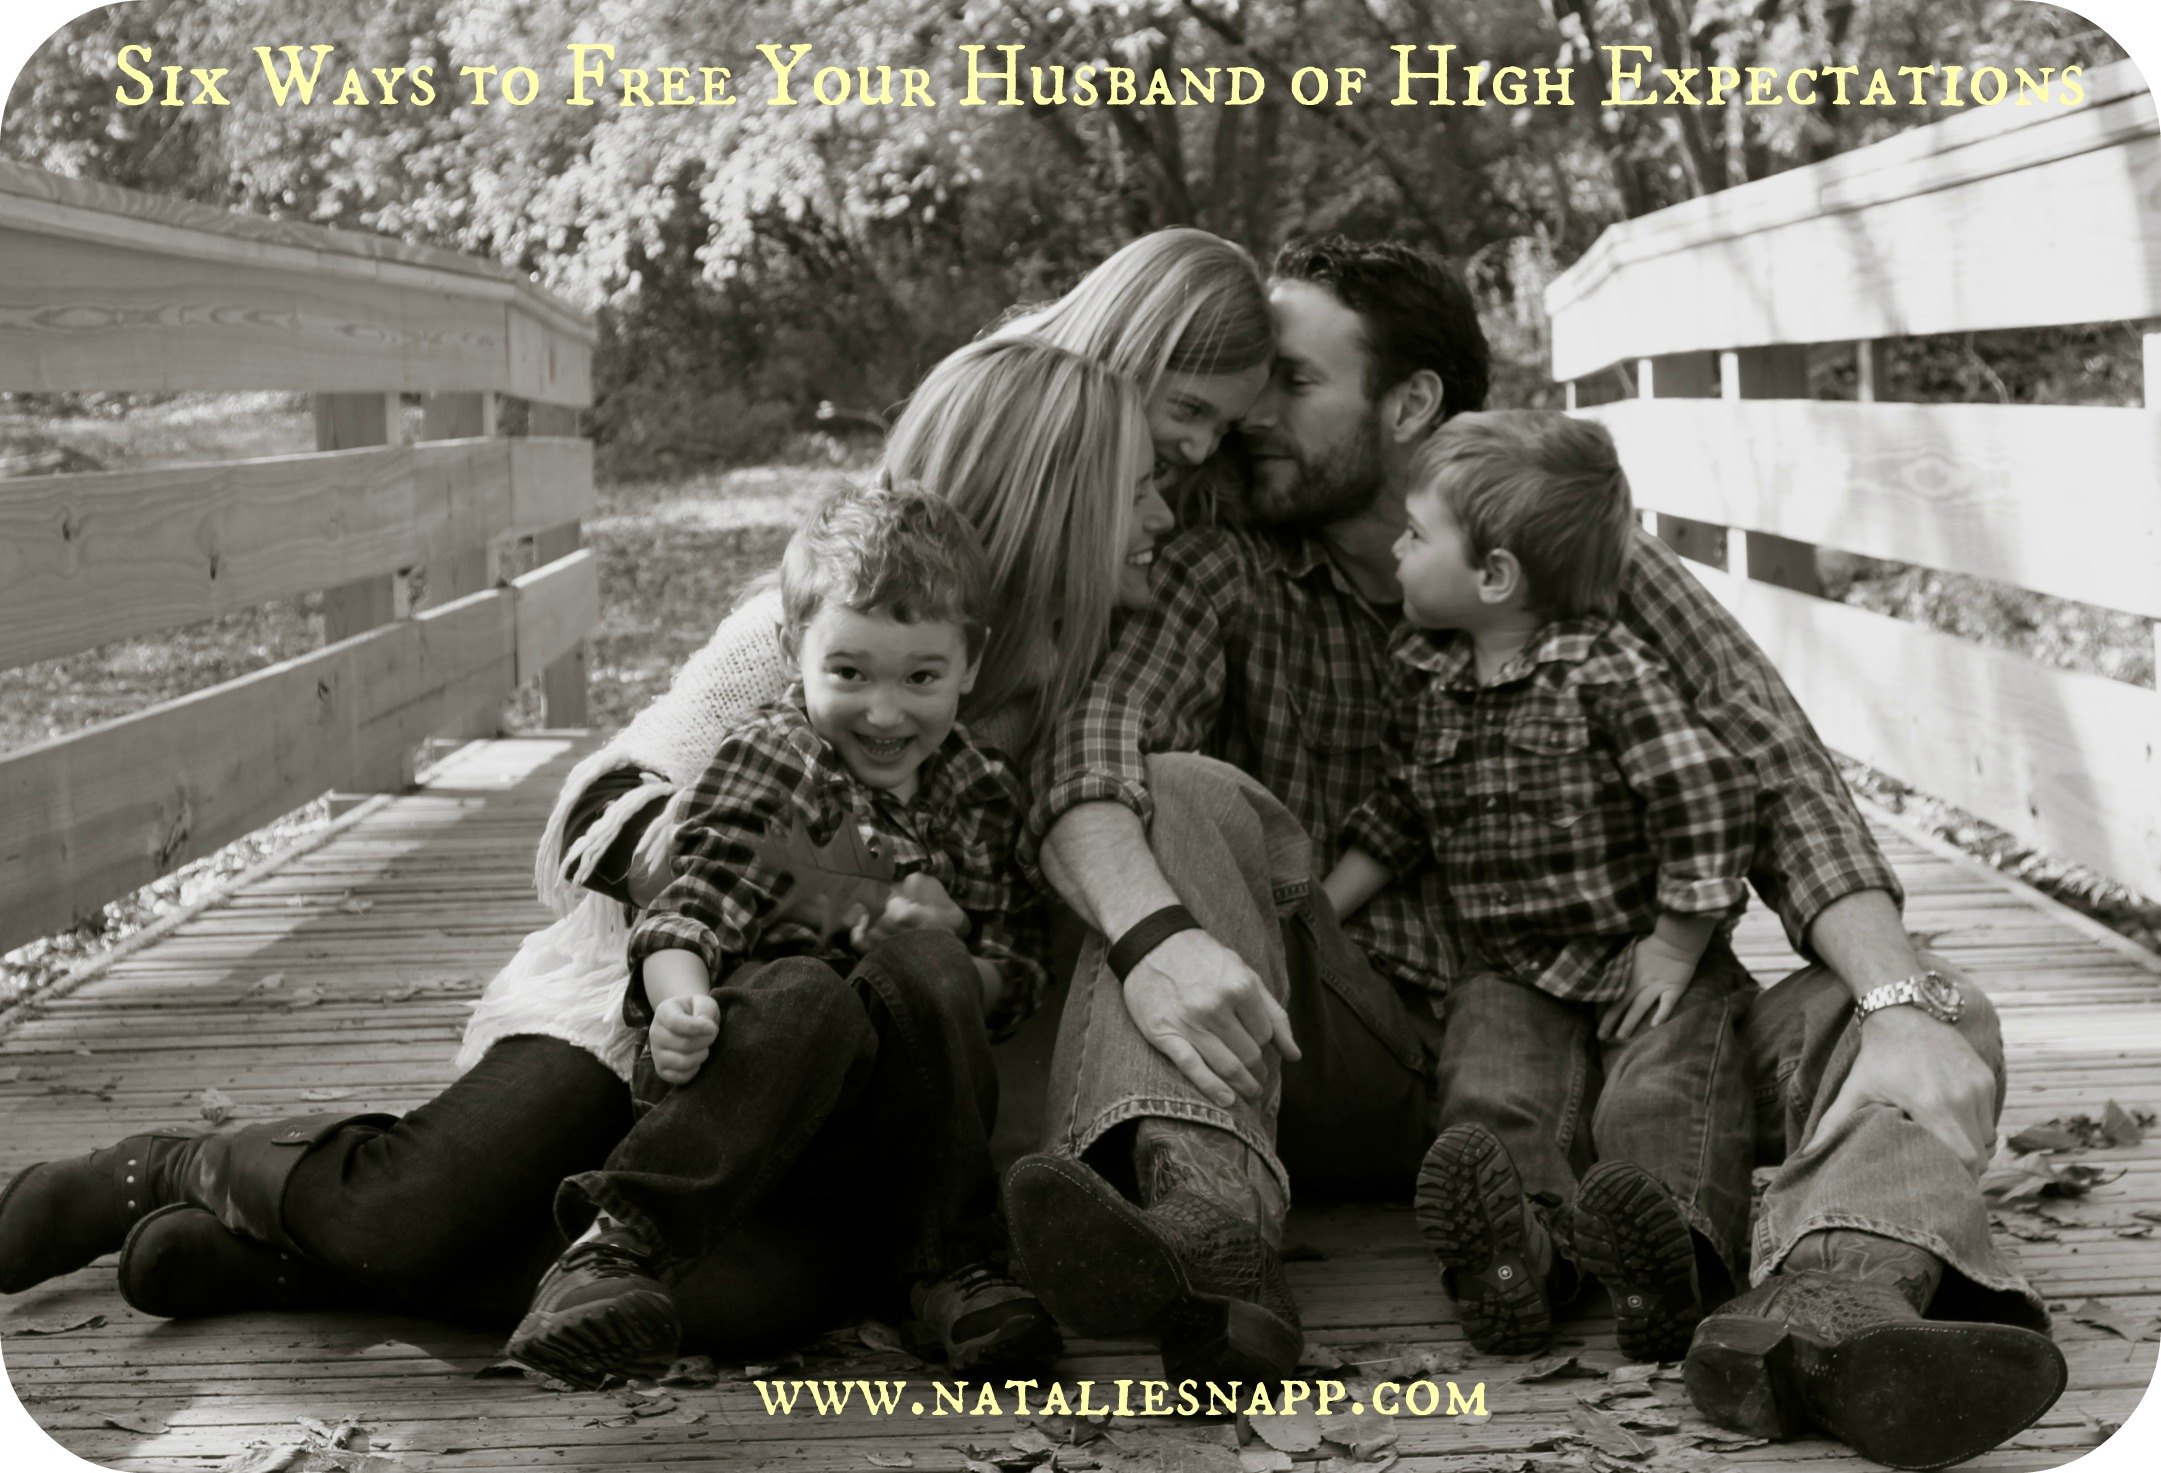 Six Ways to Free Your Husband From Unrealistic Expectations